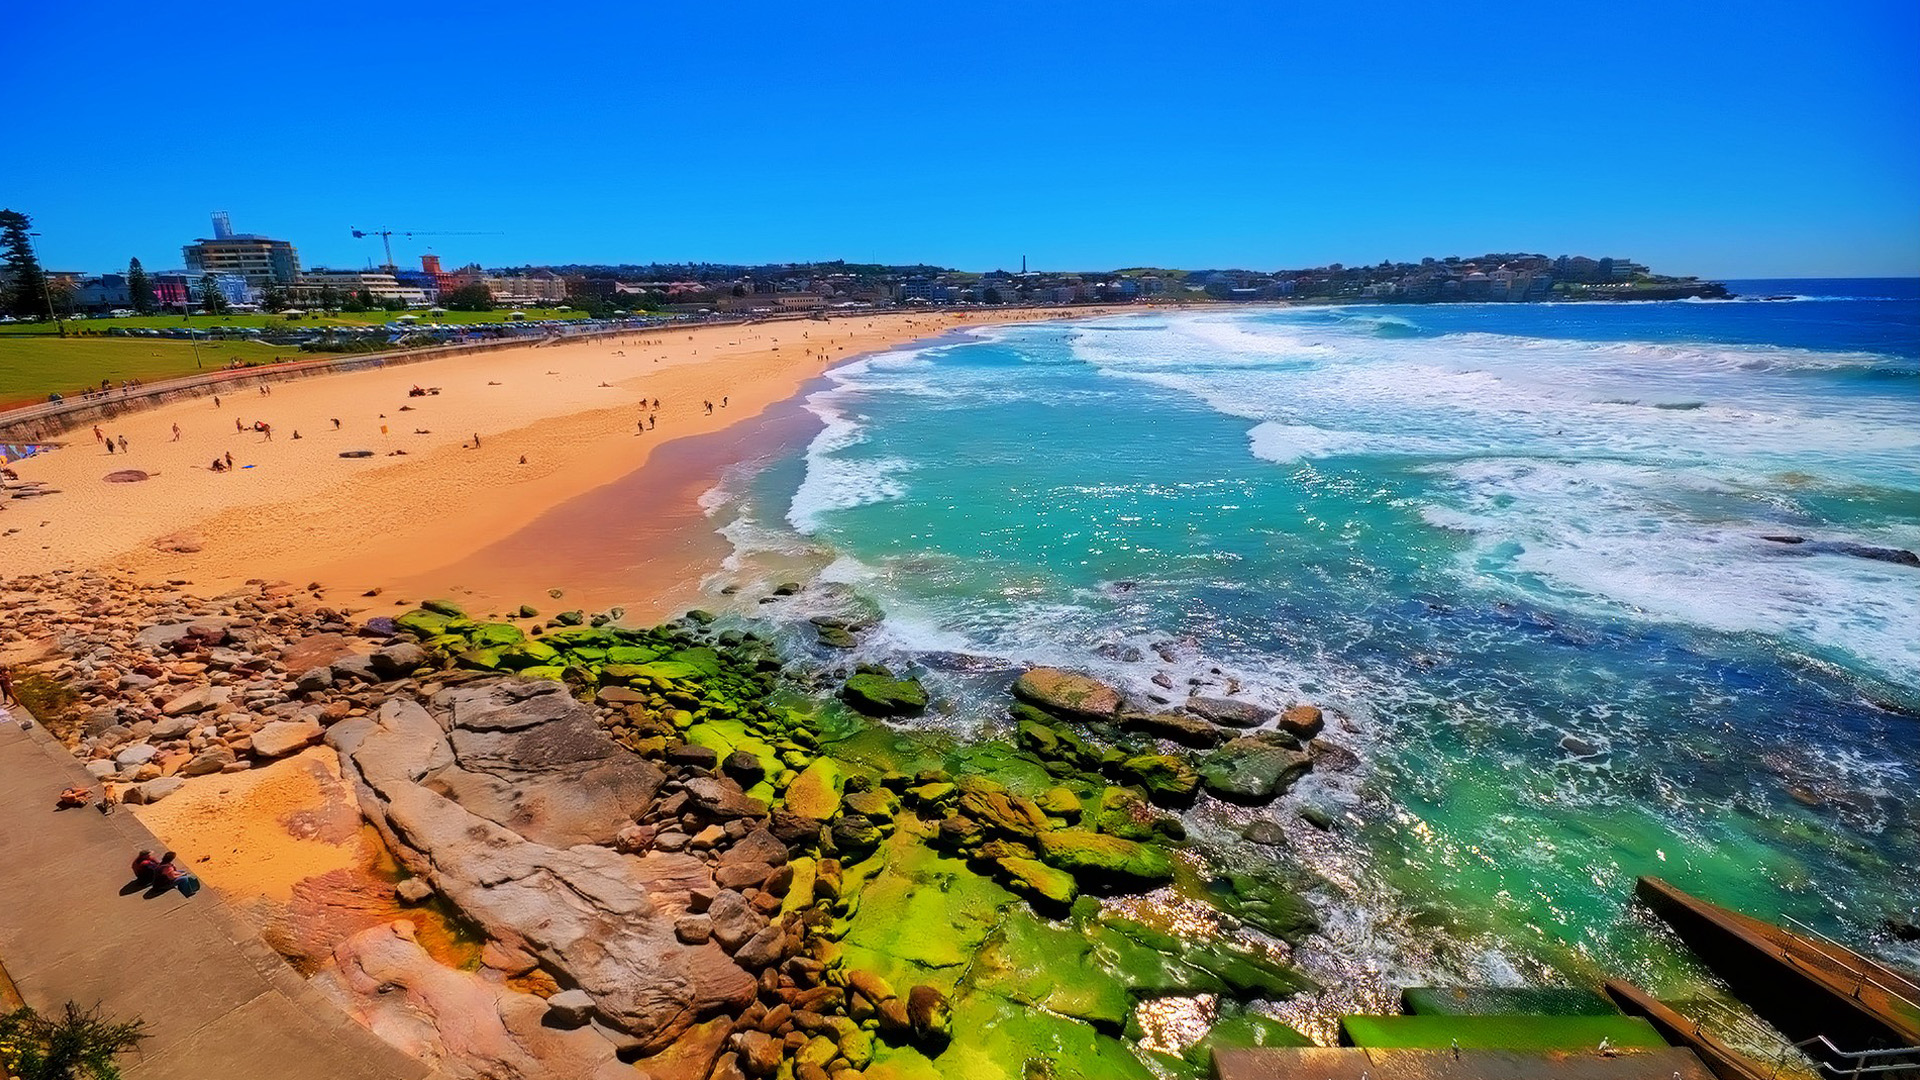 San diego beaches scenery wallpaper Beach Pictures and images 1920x1080